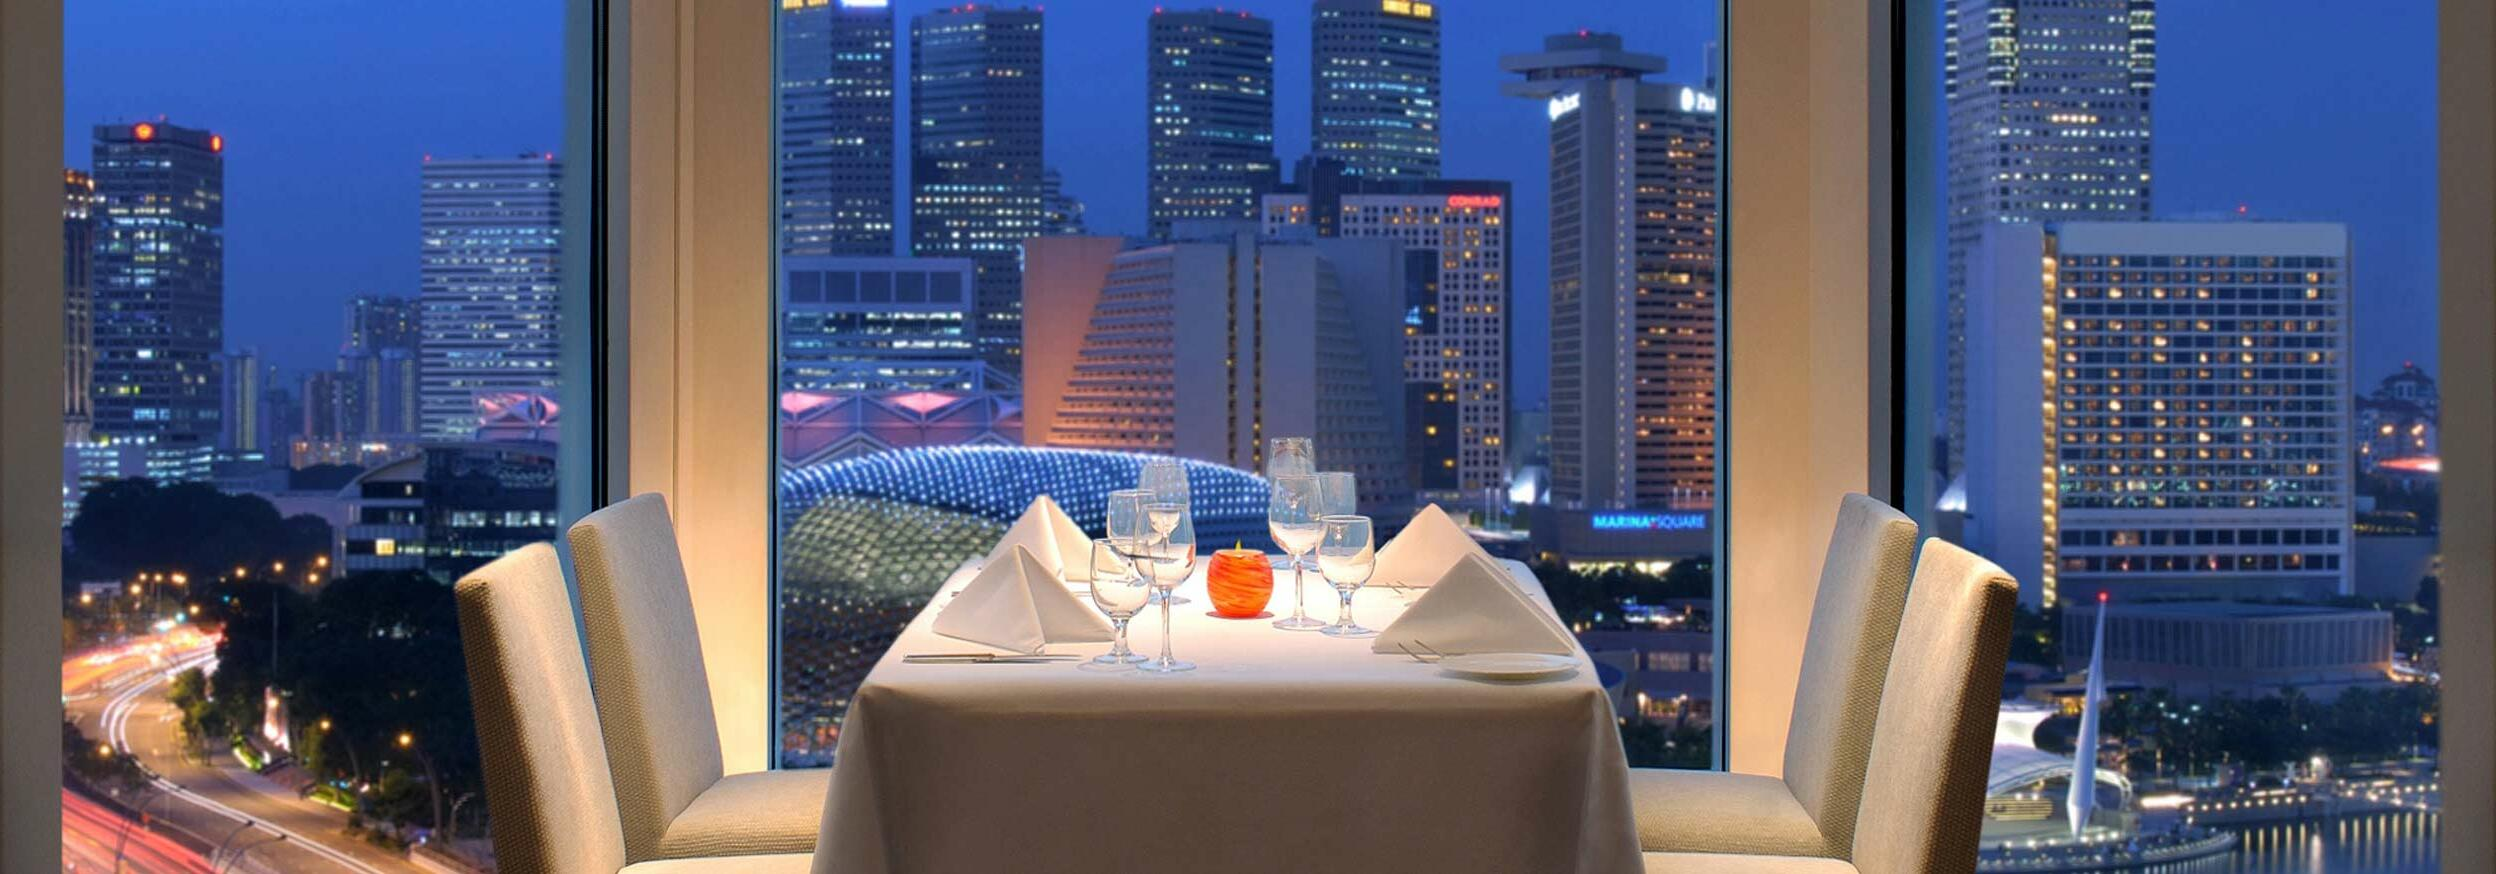 An indoor arranged dining area with a night city view